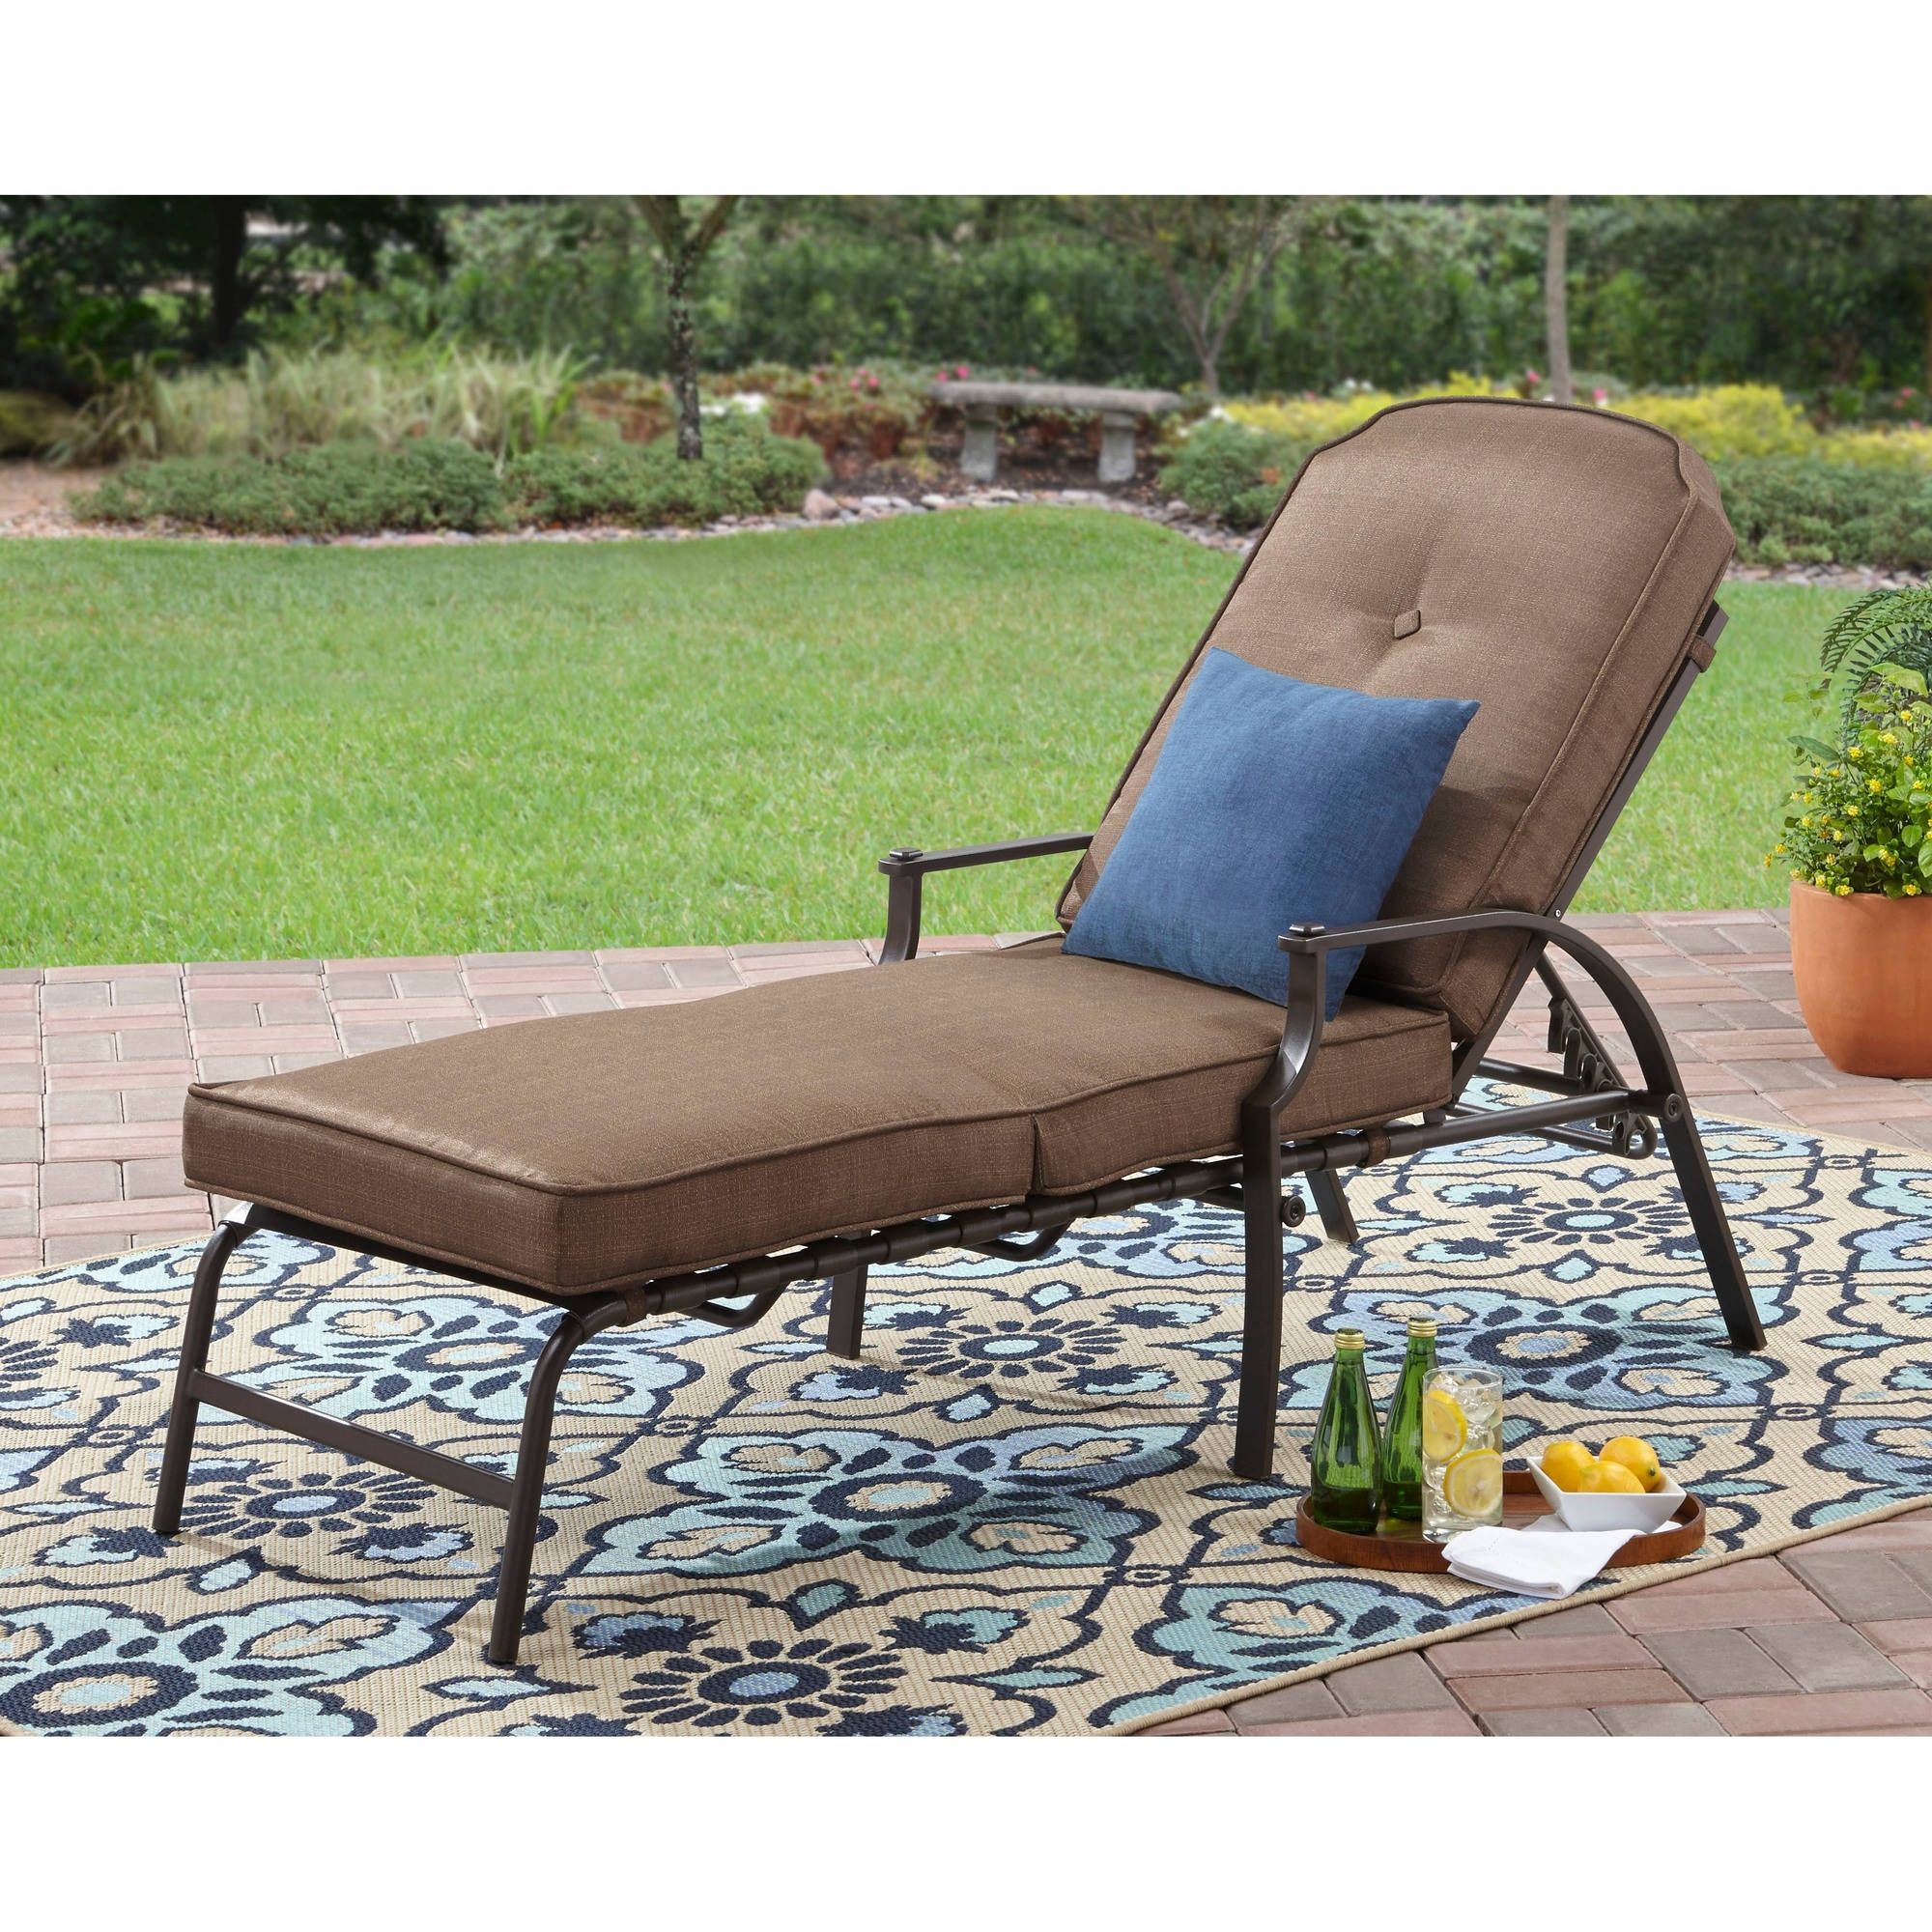 Vinyl Outdoor Chaise Lounge Chairs In Most Up To Date Mainstays Wentworth Chaise Lounge – Walmart (View 9 of 15)